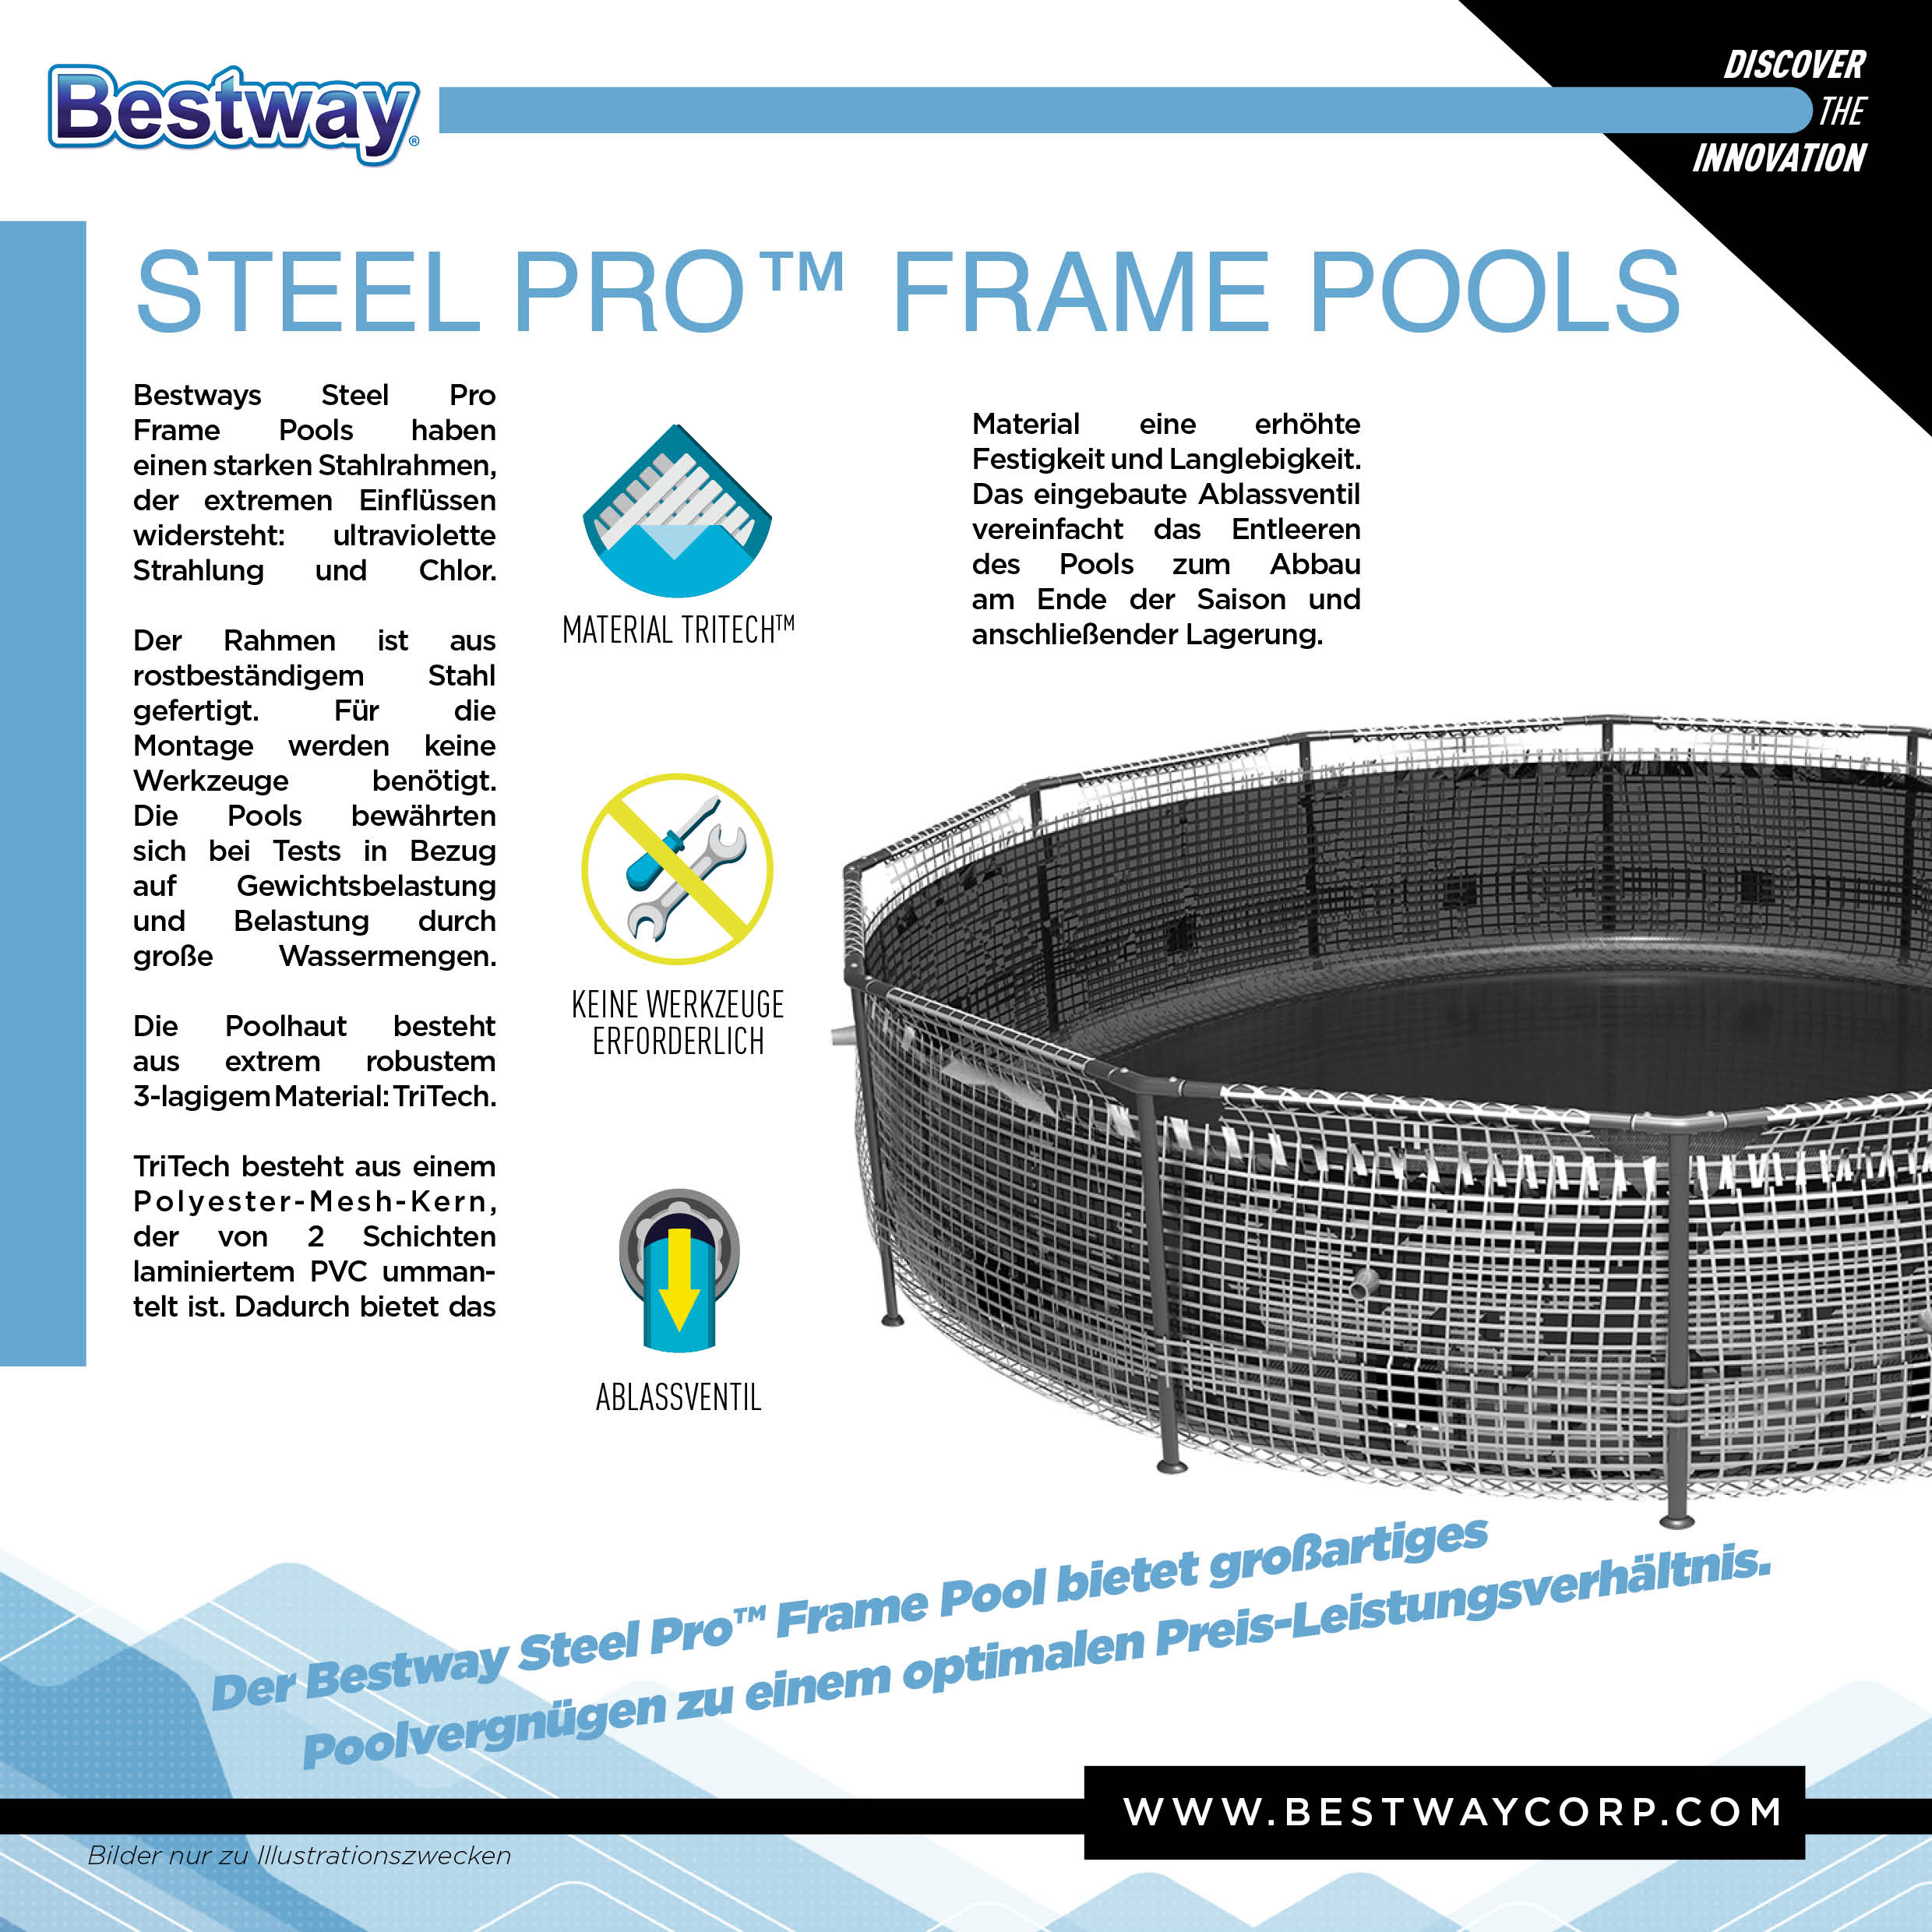 Steel_Pro_Frame_Pools_DE